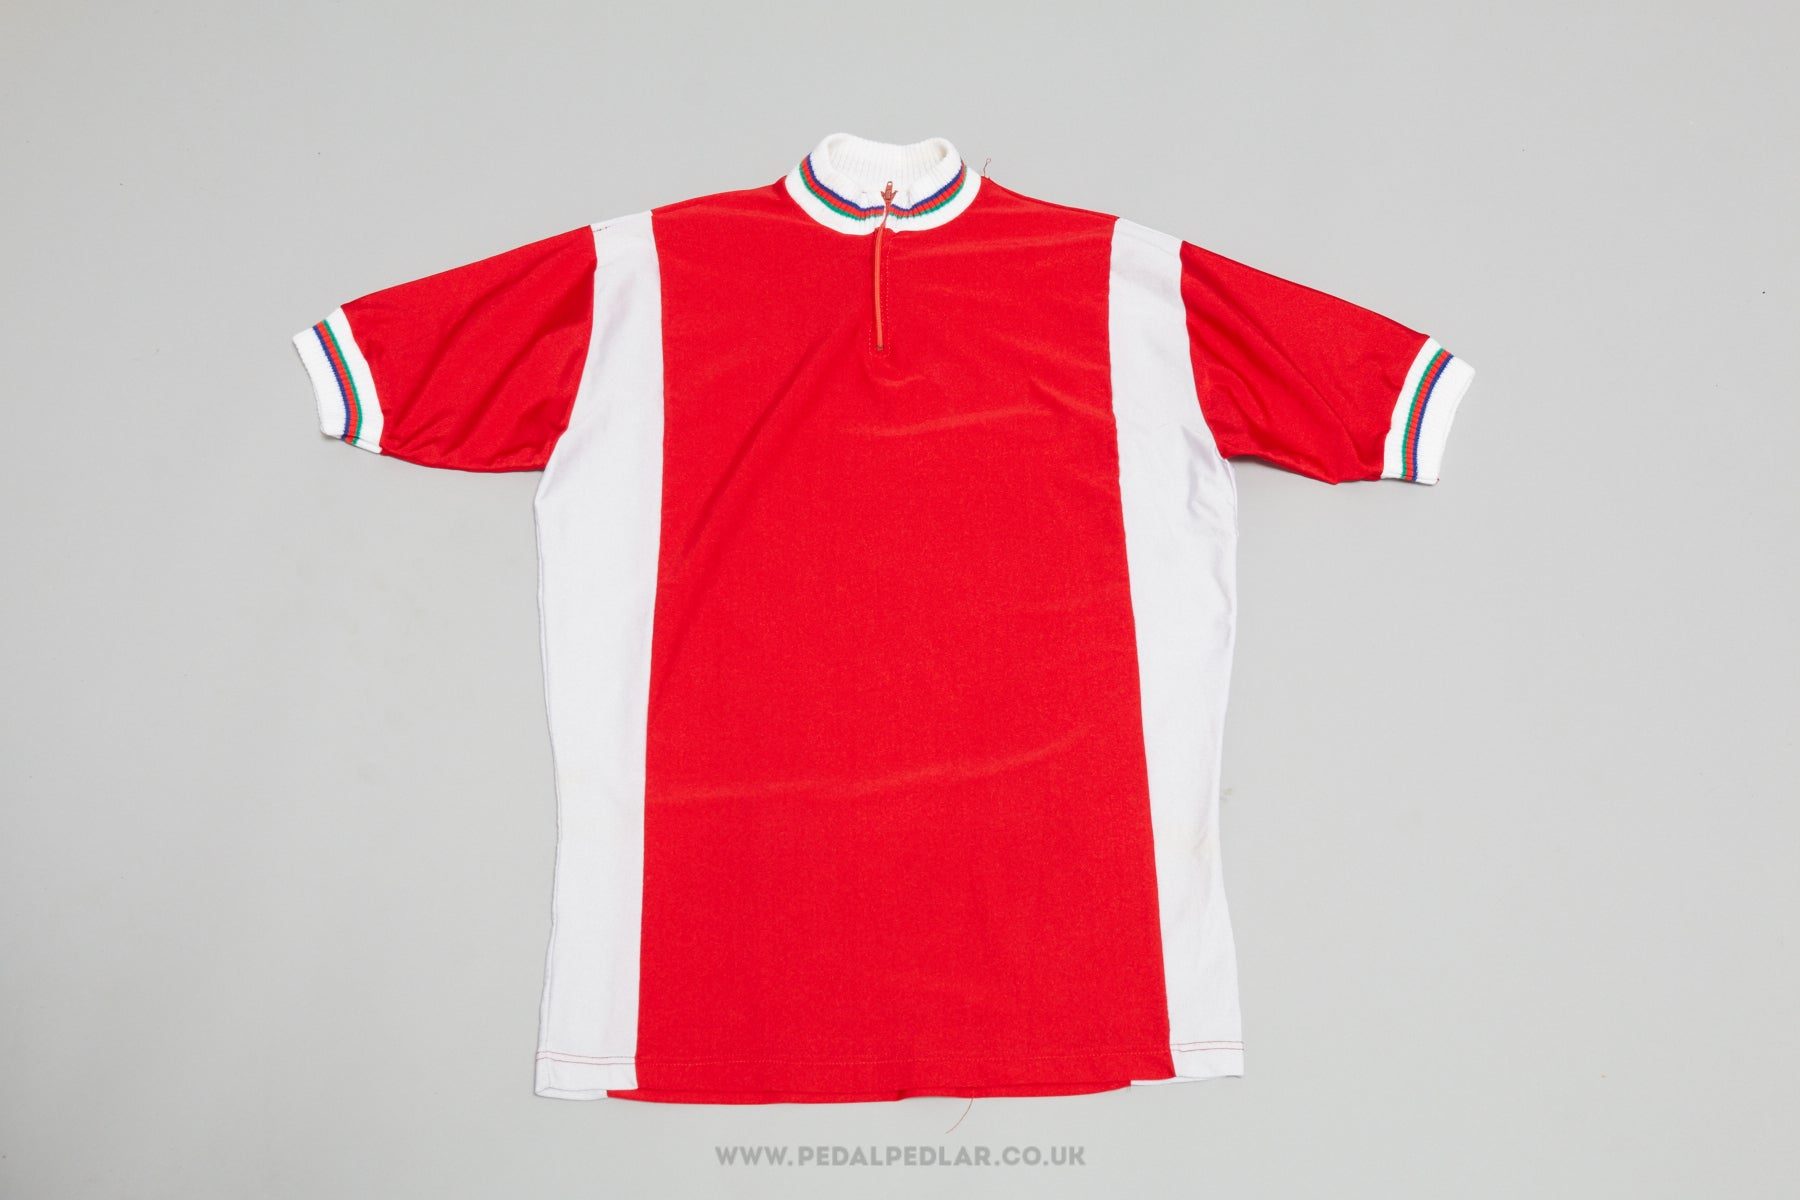 d0d71fa56 Sport NOS Vintage Woollen Style Cycling Jersey